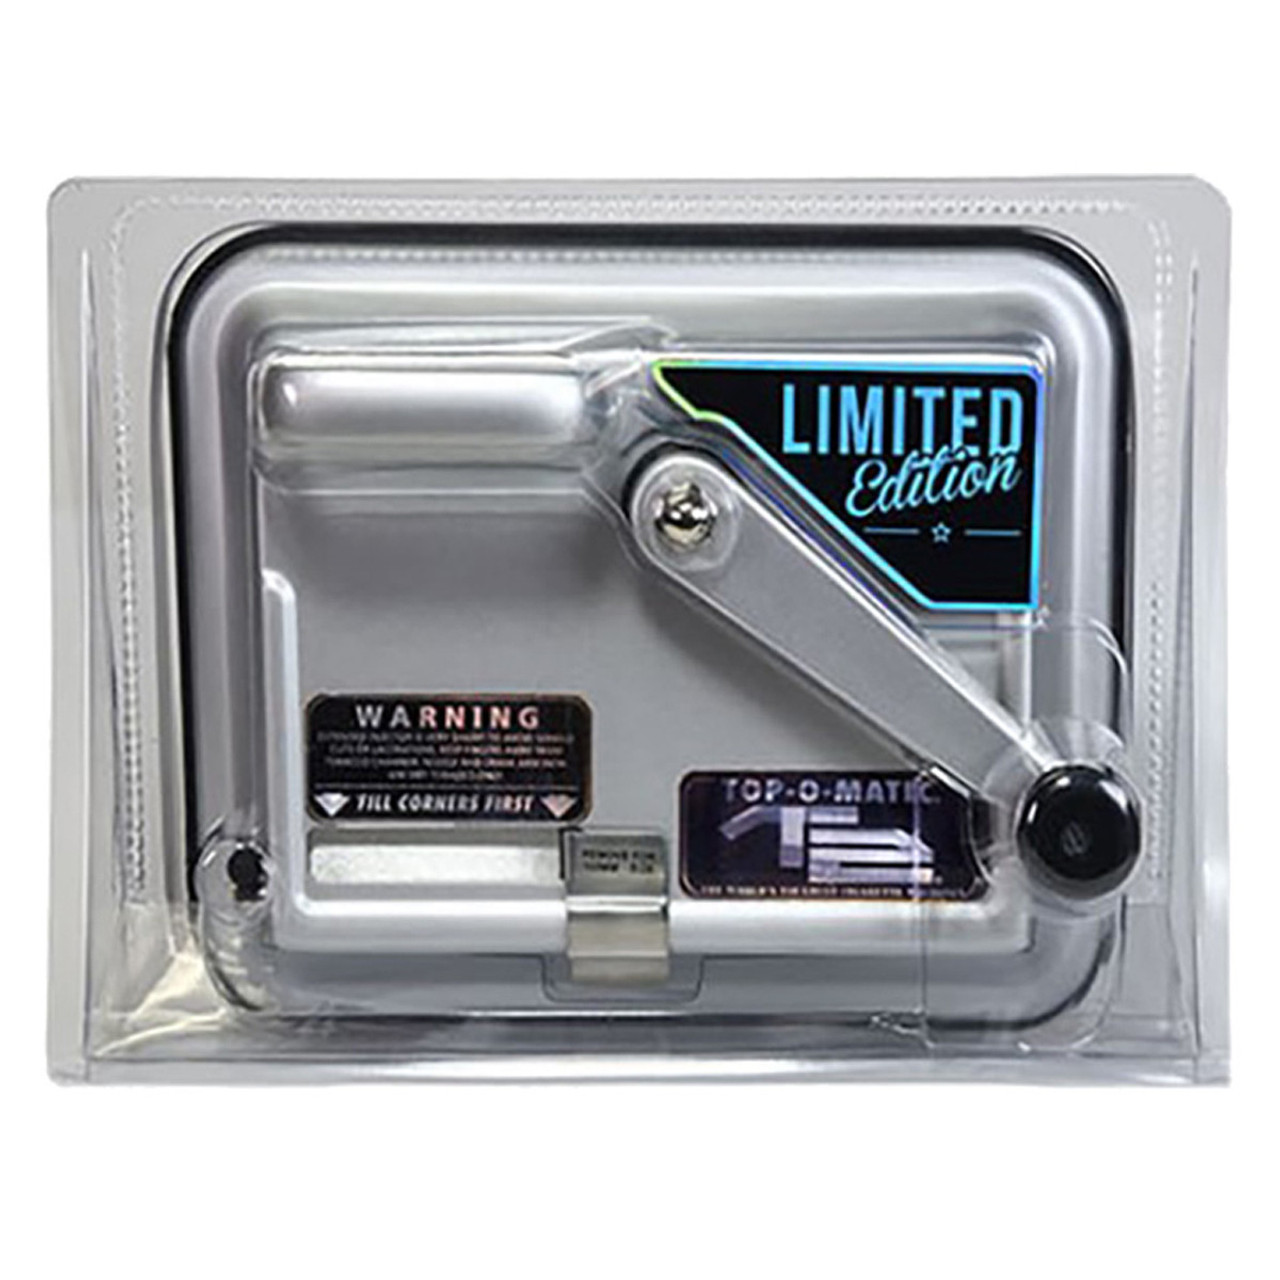 Top-O-Matic T2 Cigarette Rolling Injector Machine Limited Edition Silver